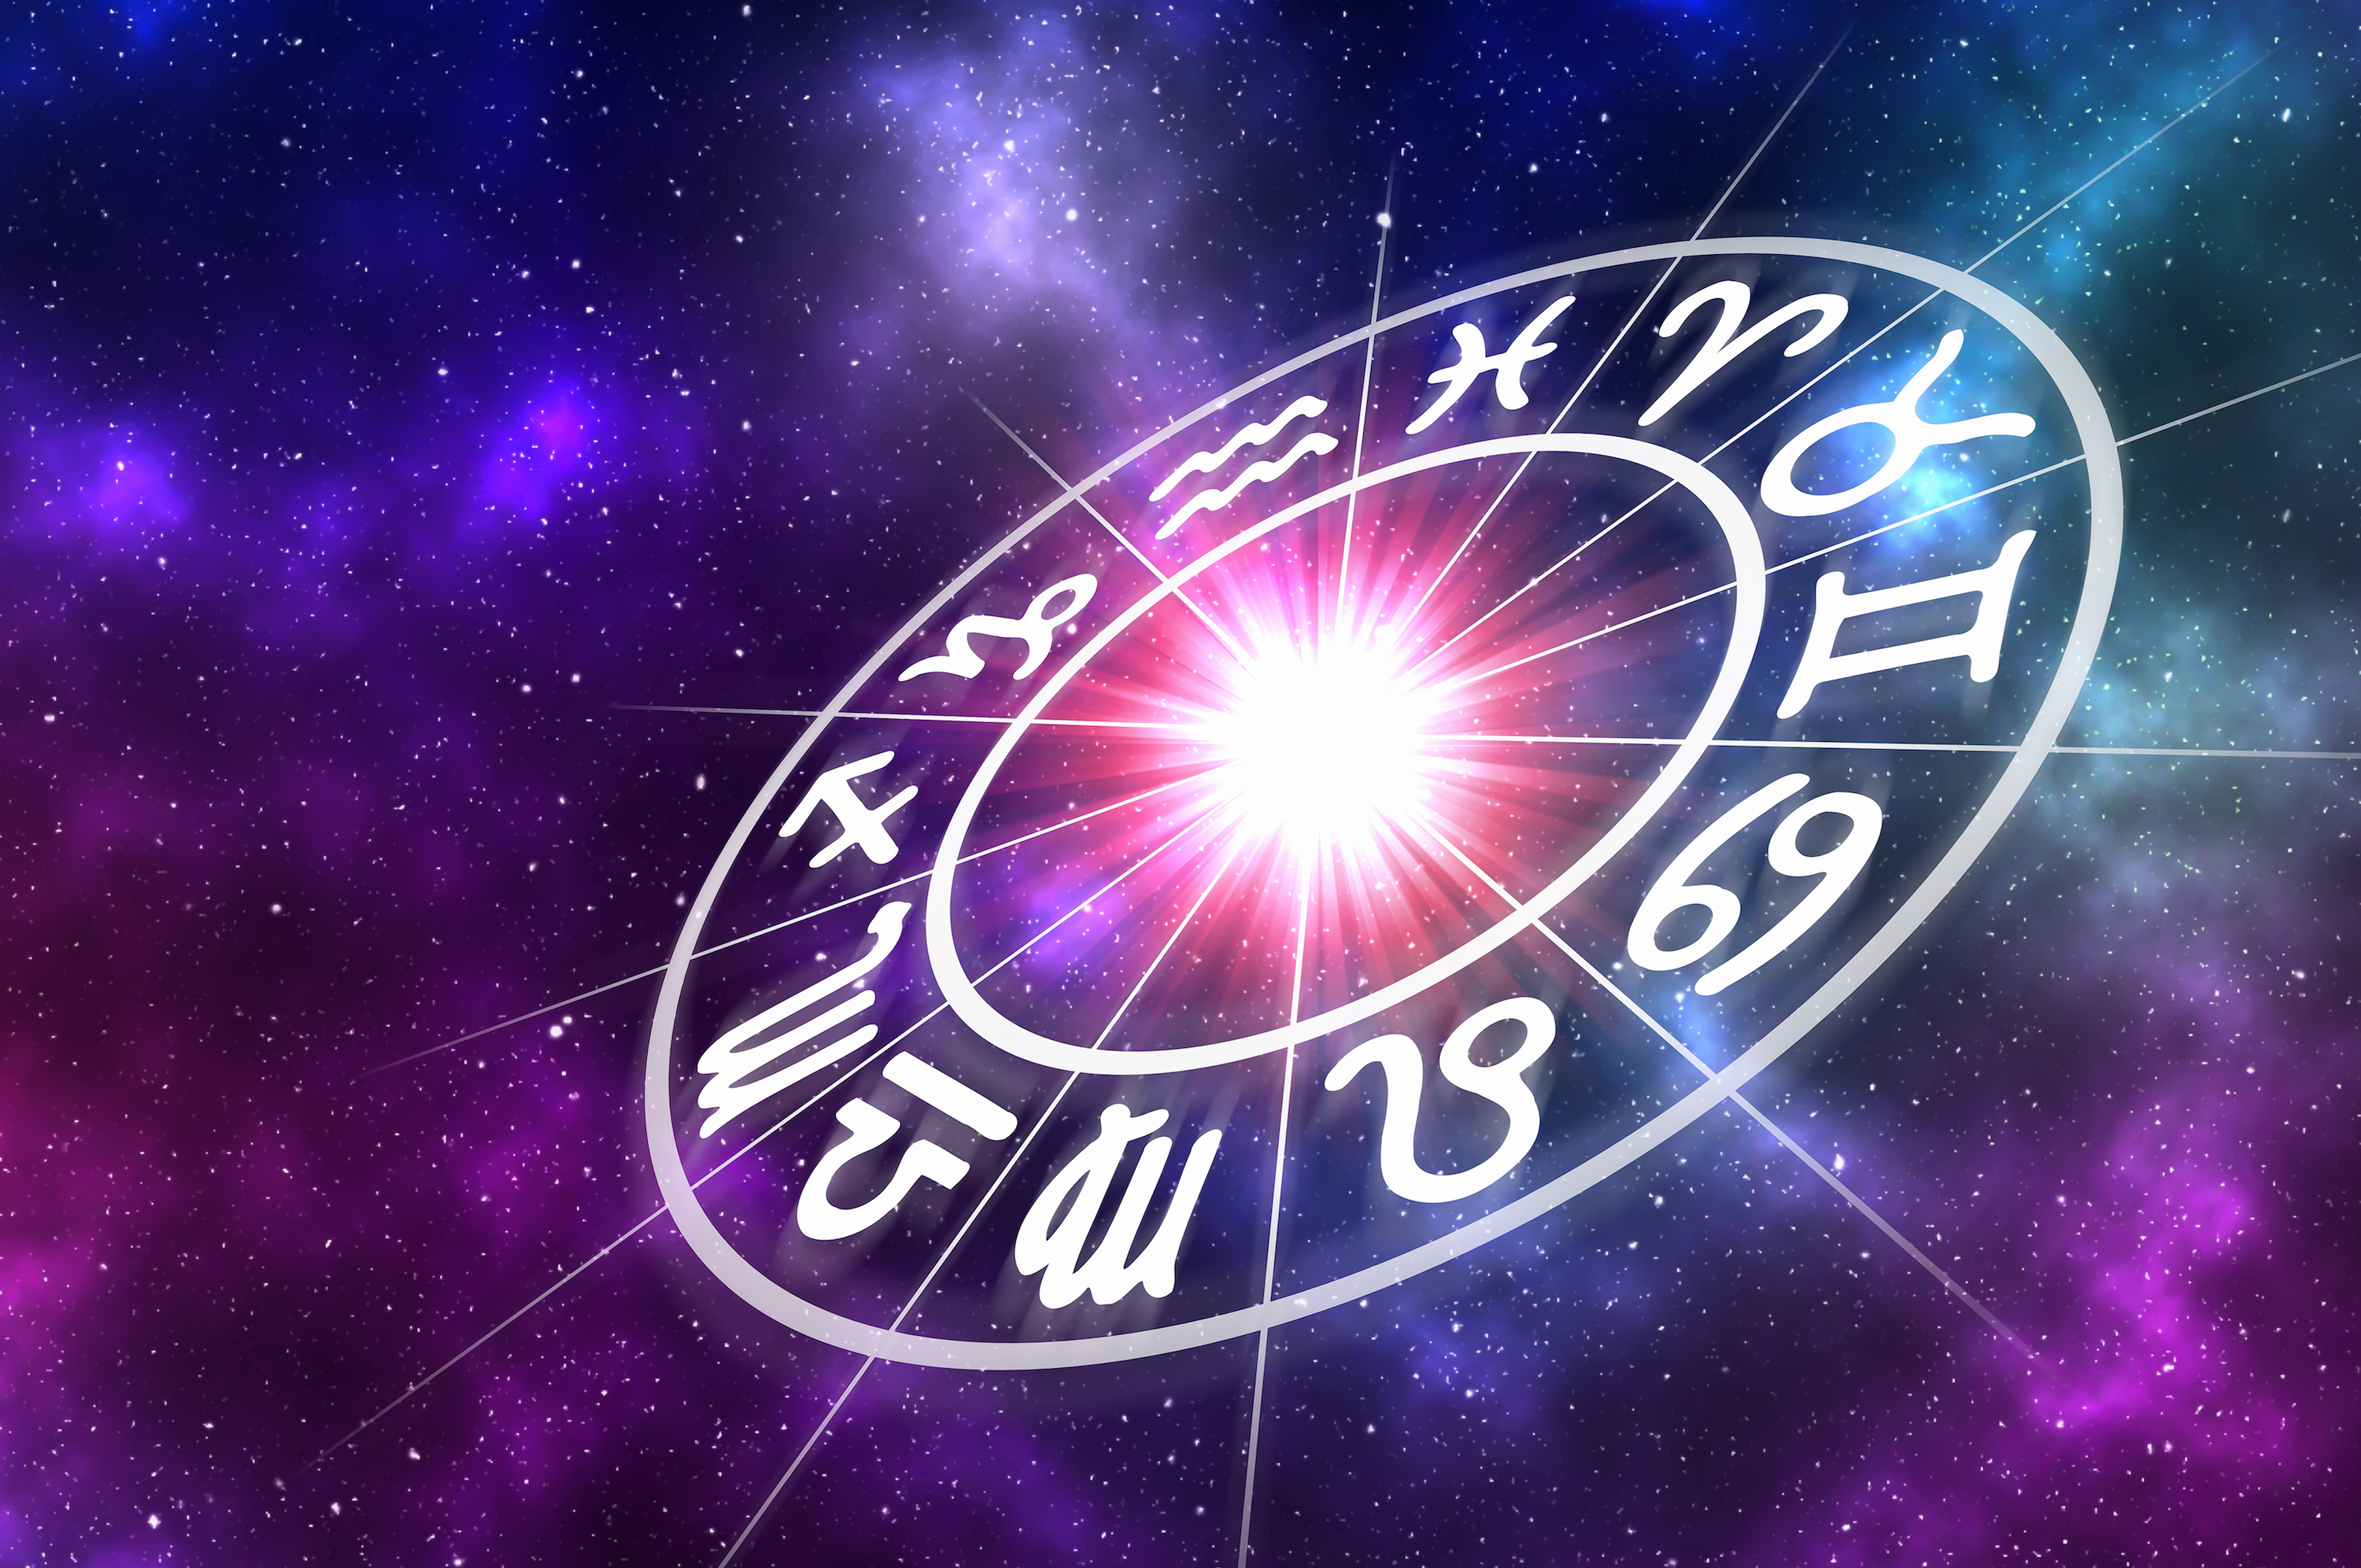 What your baby's star sign says about them